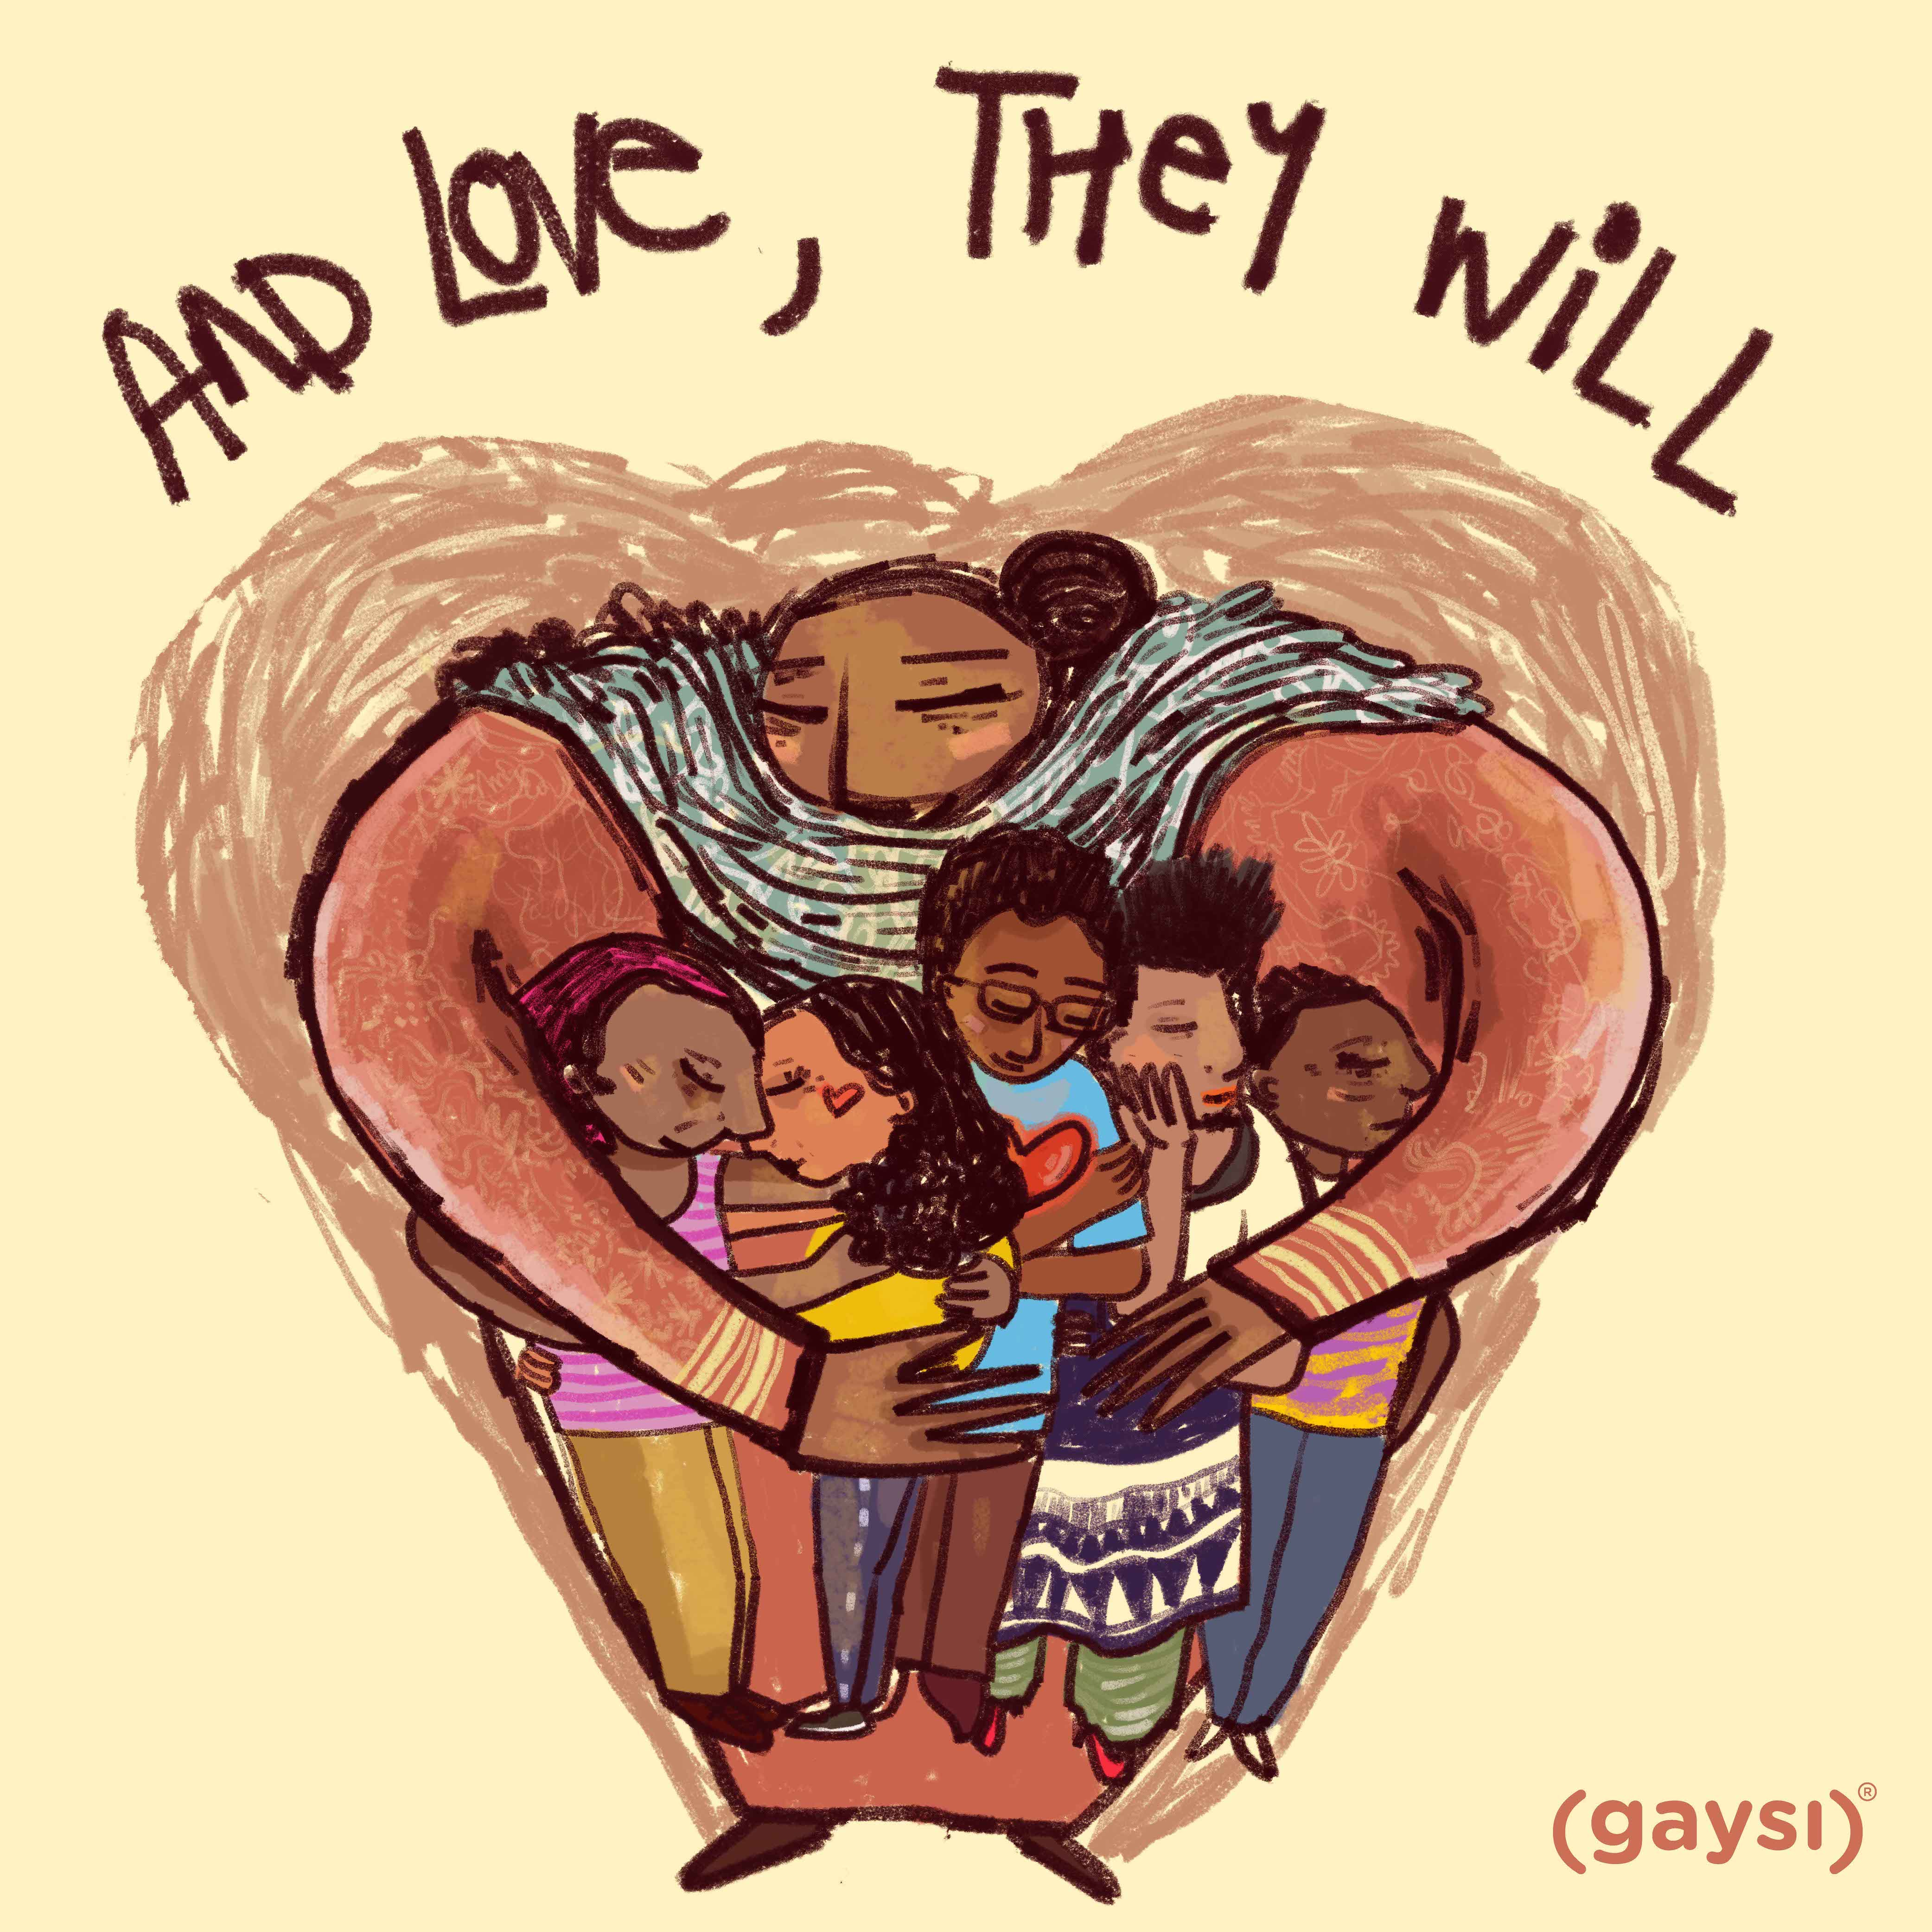 Poem: And Love, They Will